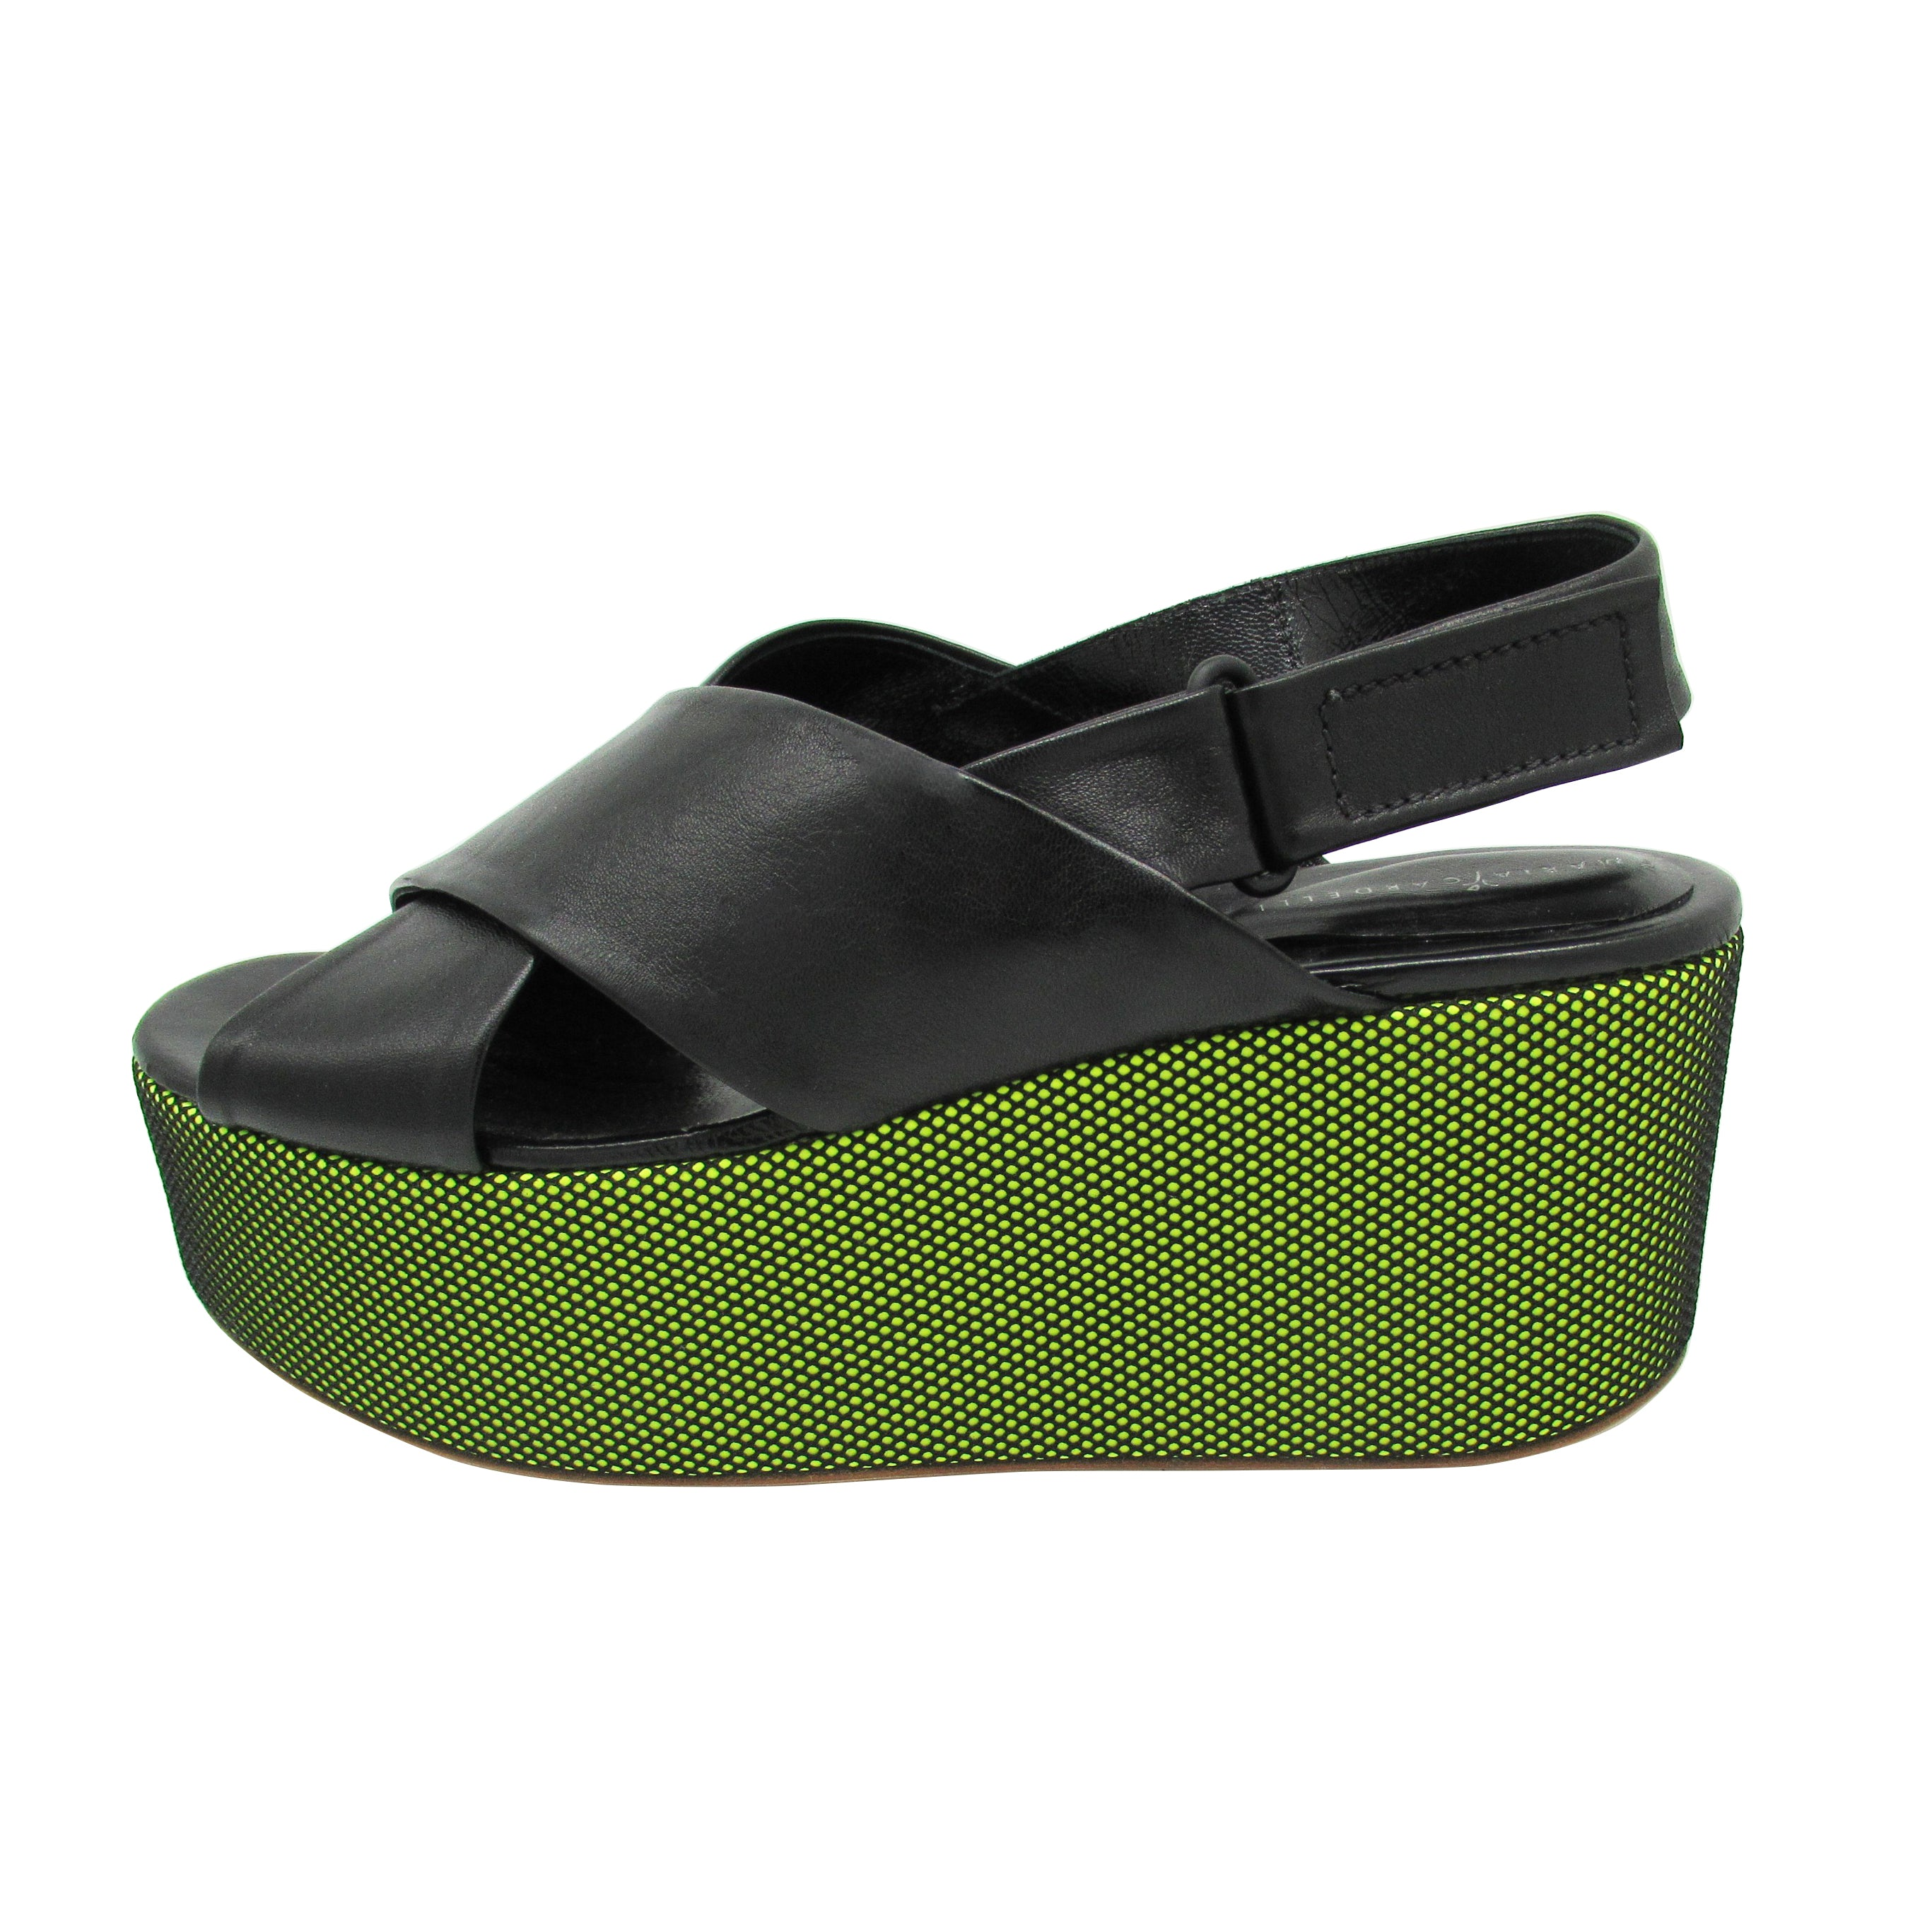 Funk sandals Neon Green - Wholesale Price - Maria Cardelli Fashion Accessories